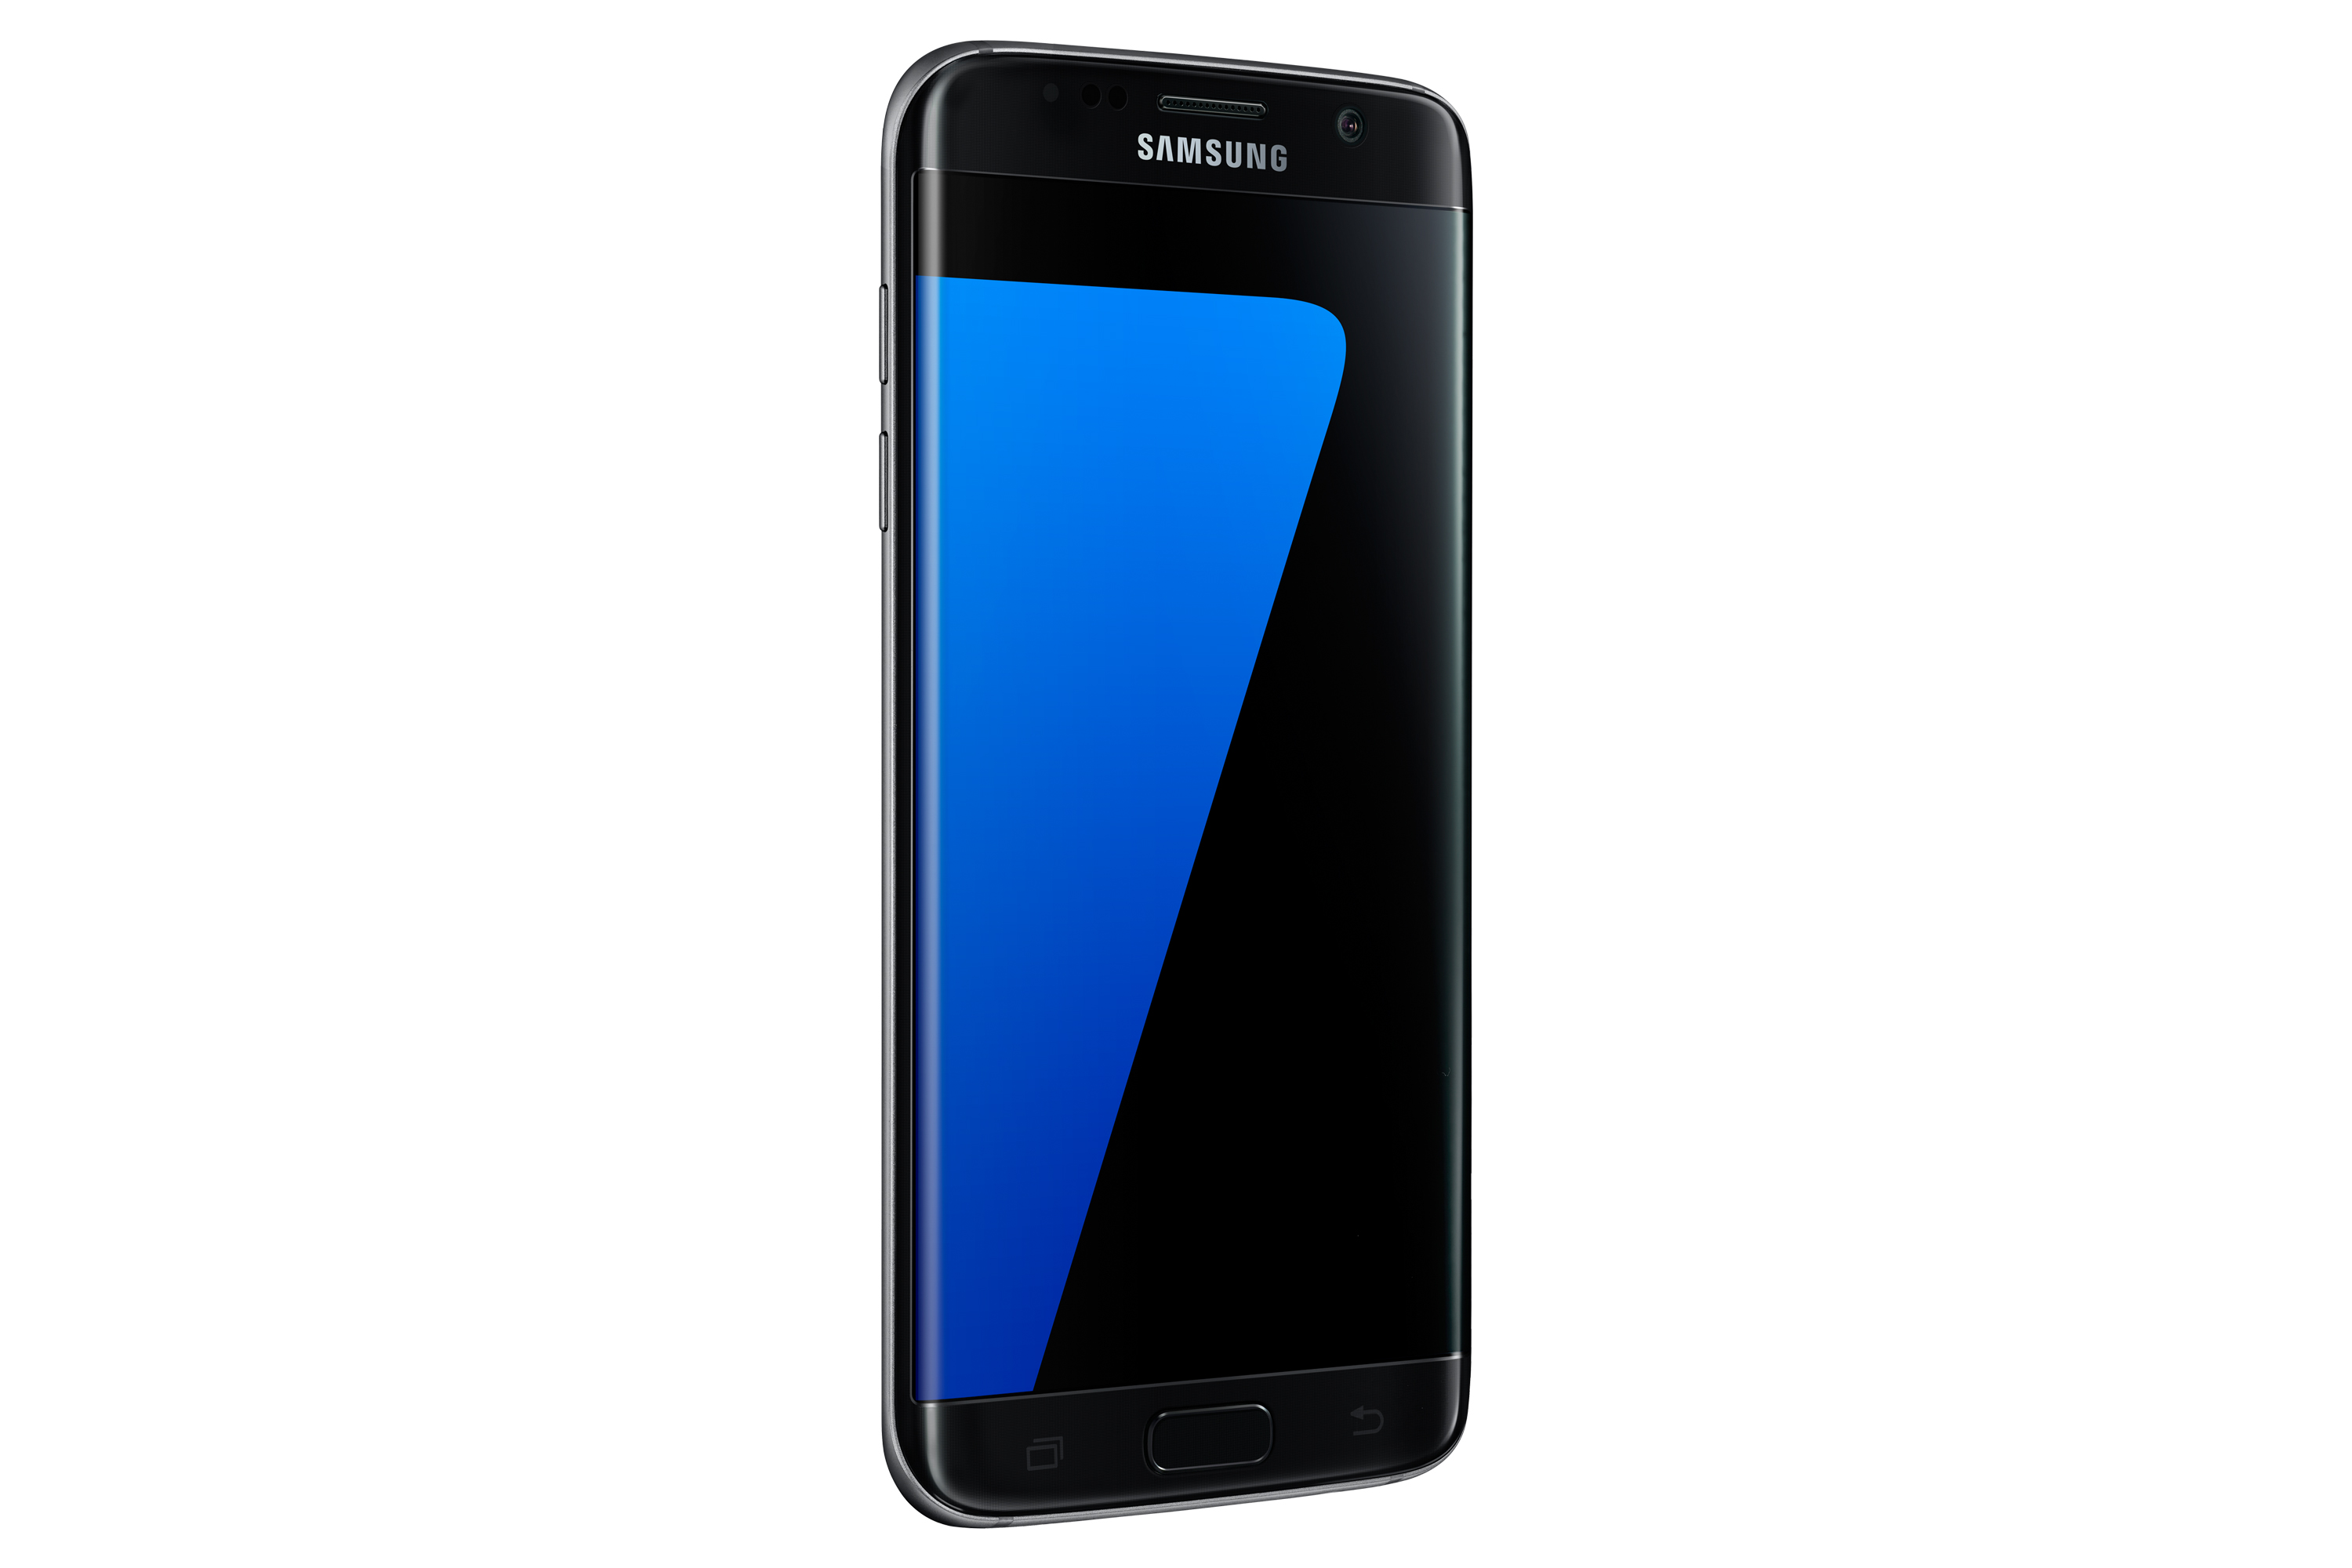 Galaxy-S7-edge-official-press-shots (2)